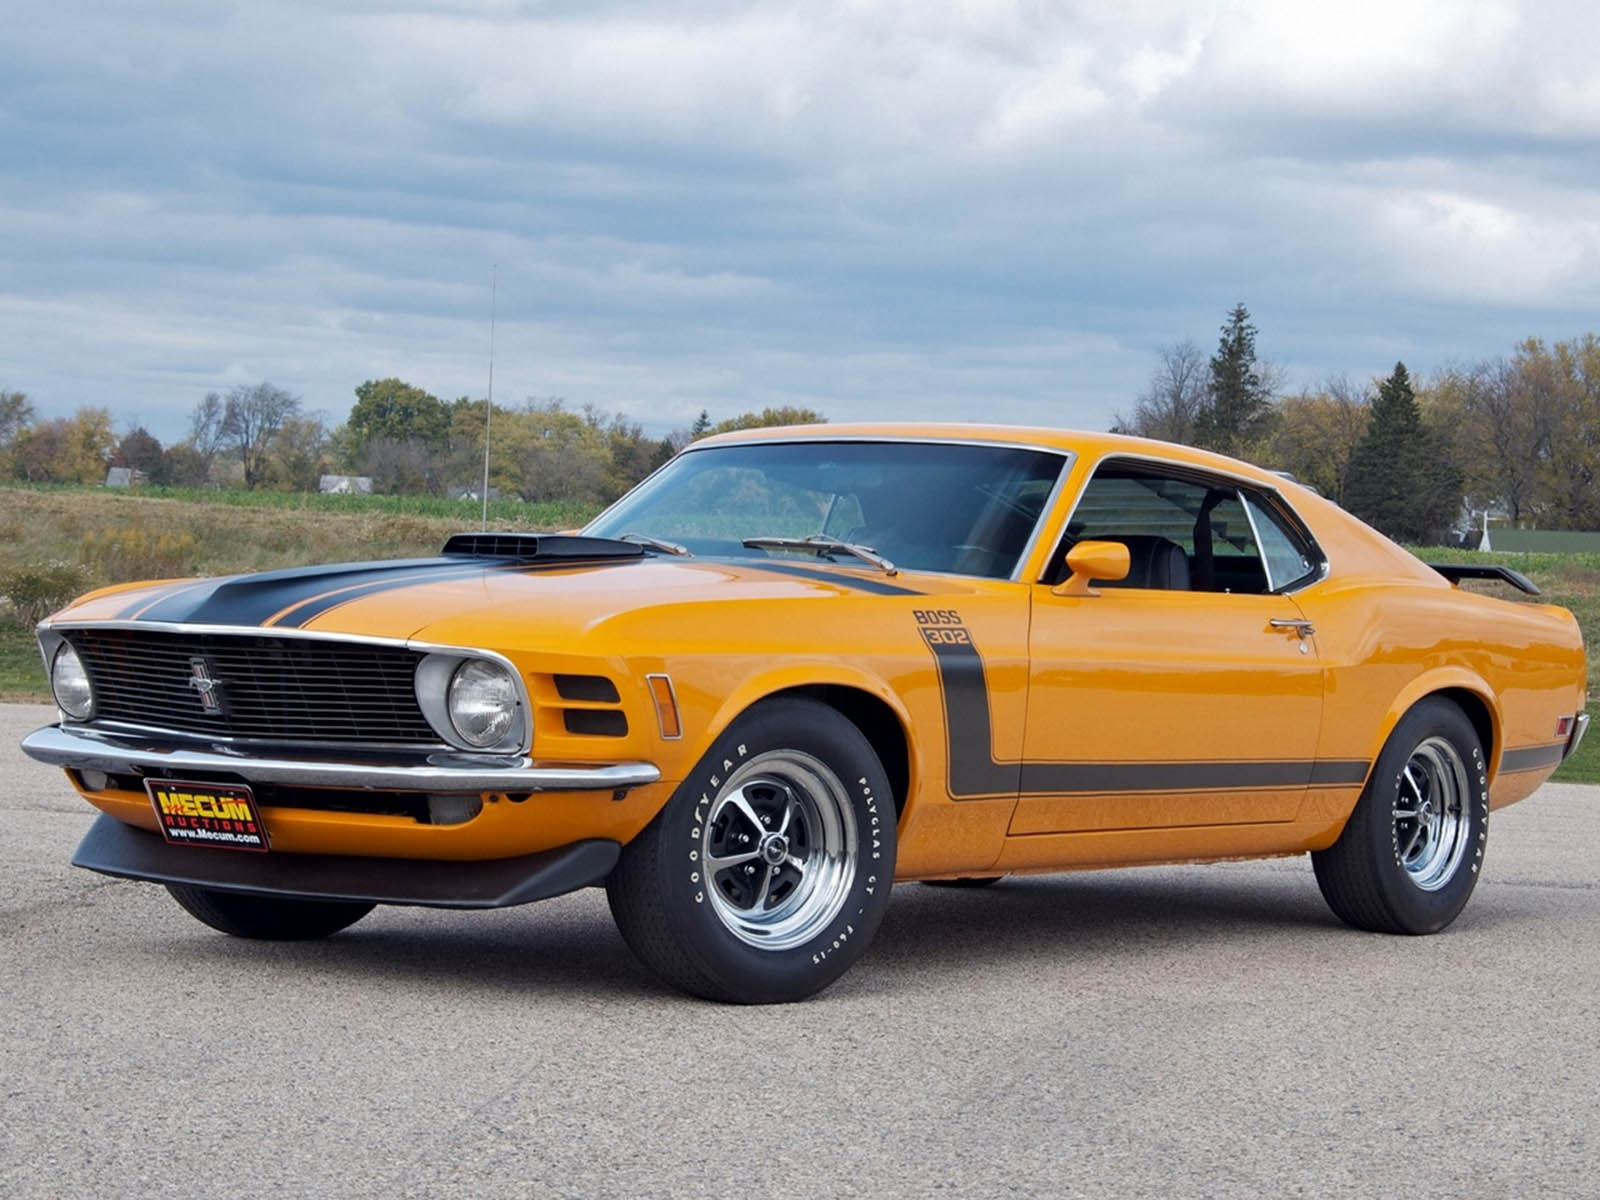 wallpapers Classic Cars Wallpapers 1600x1200